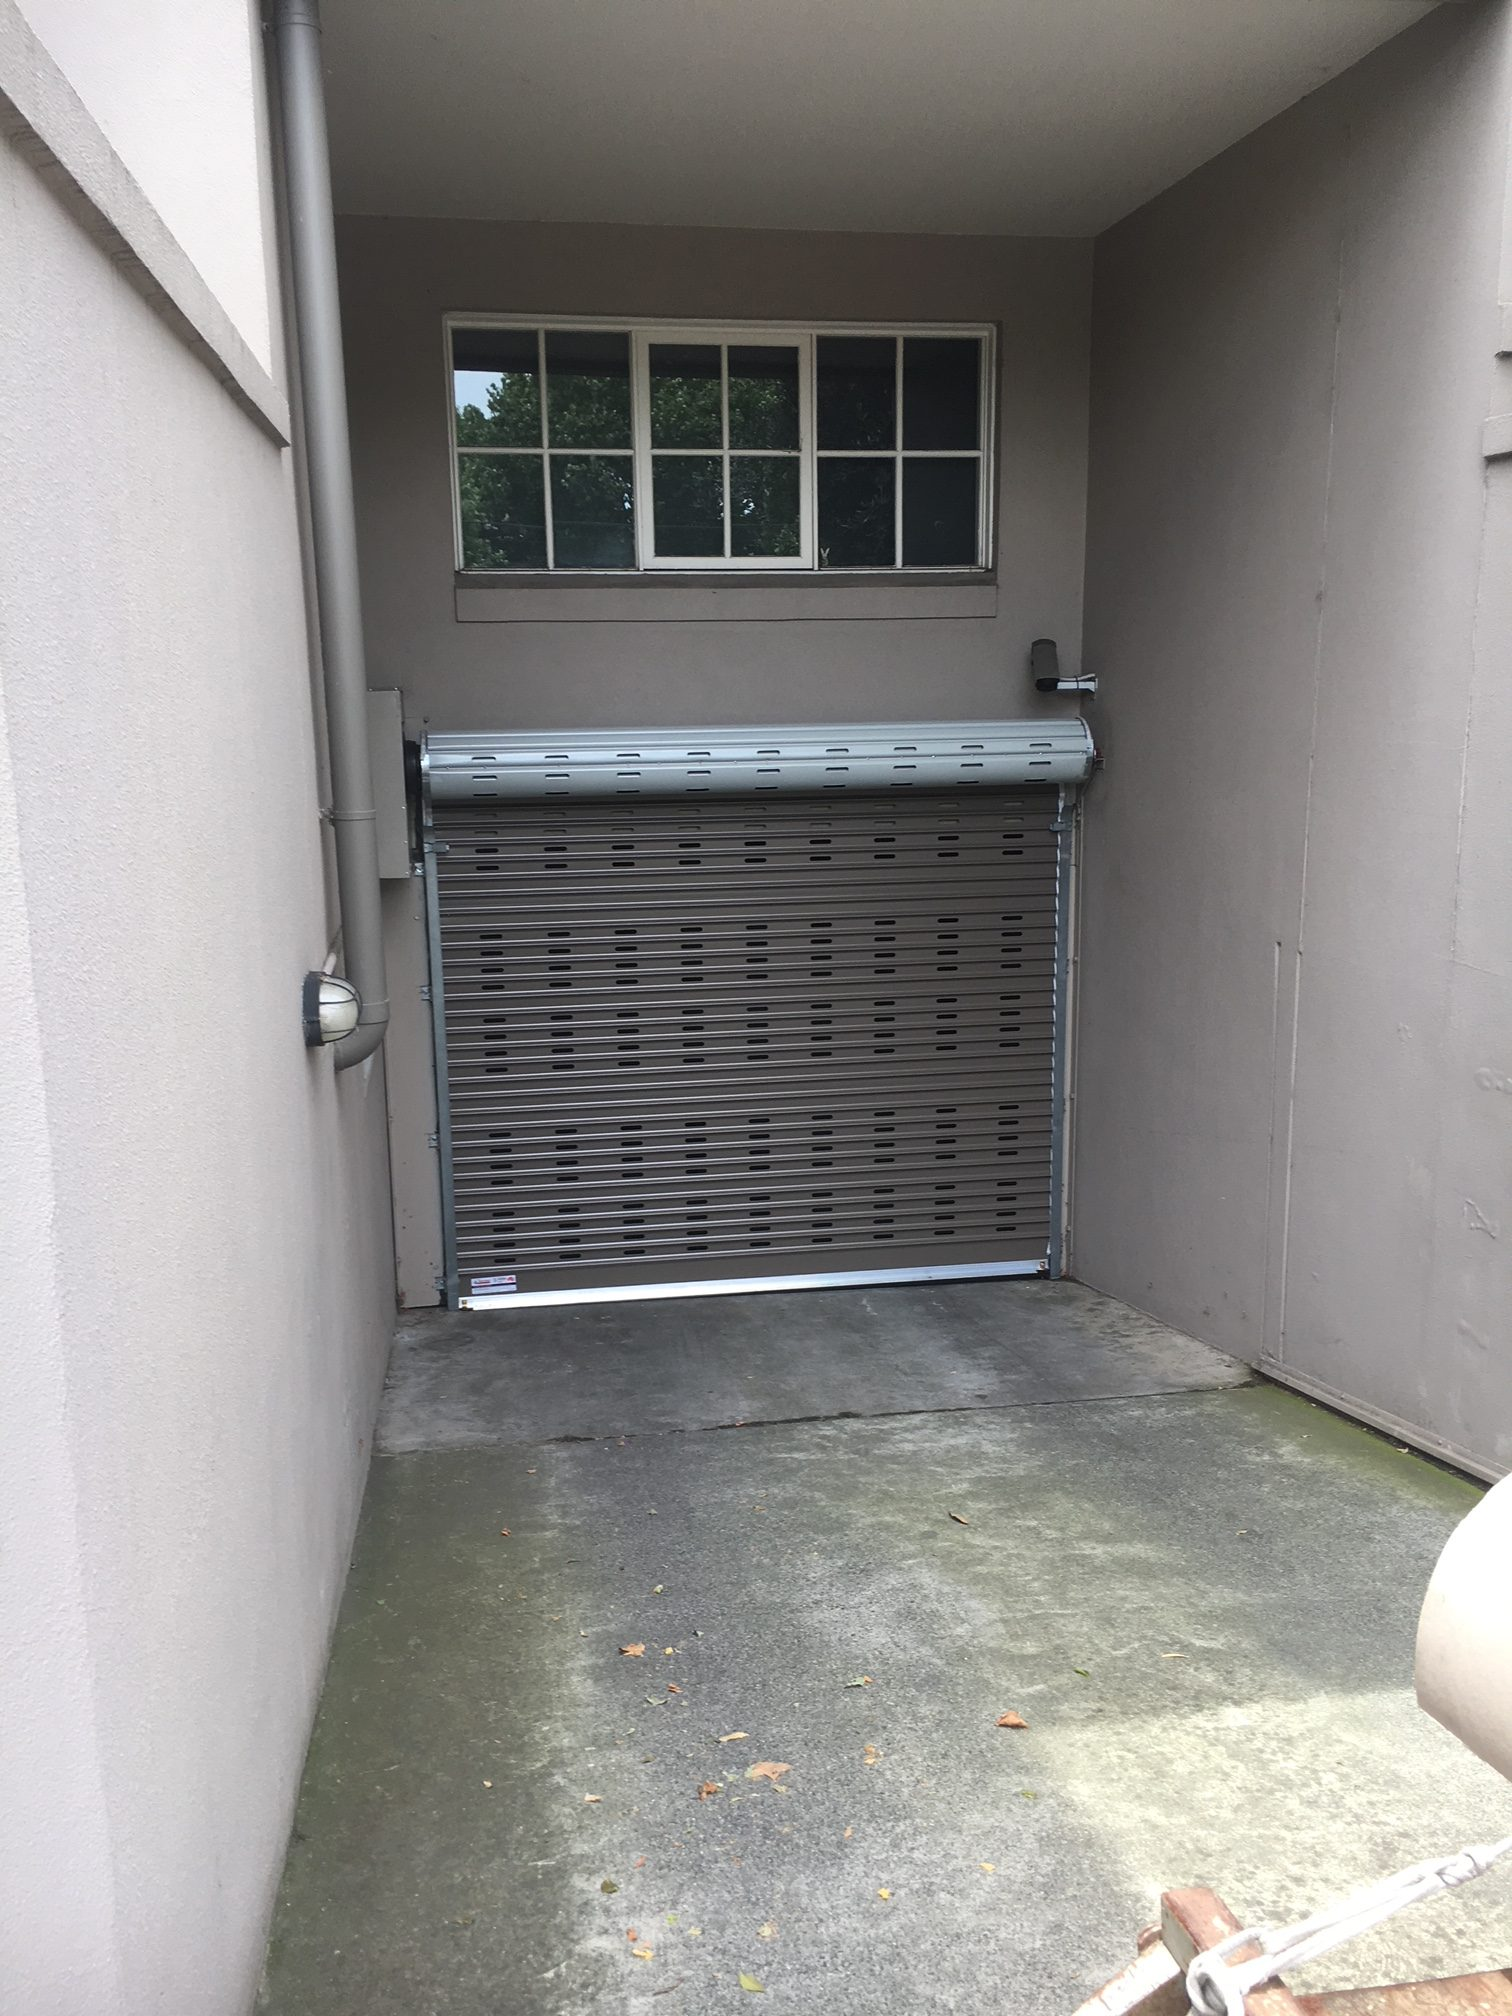 La bayside gates and garage doors perforated roller door install on apartment building in windsor